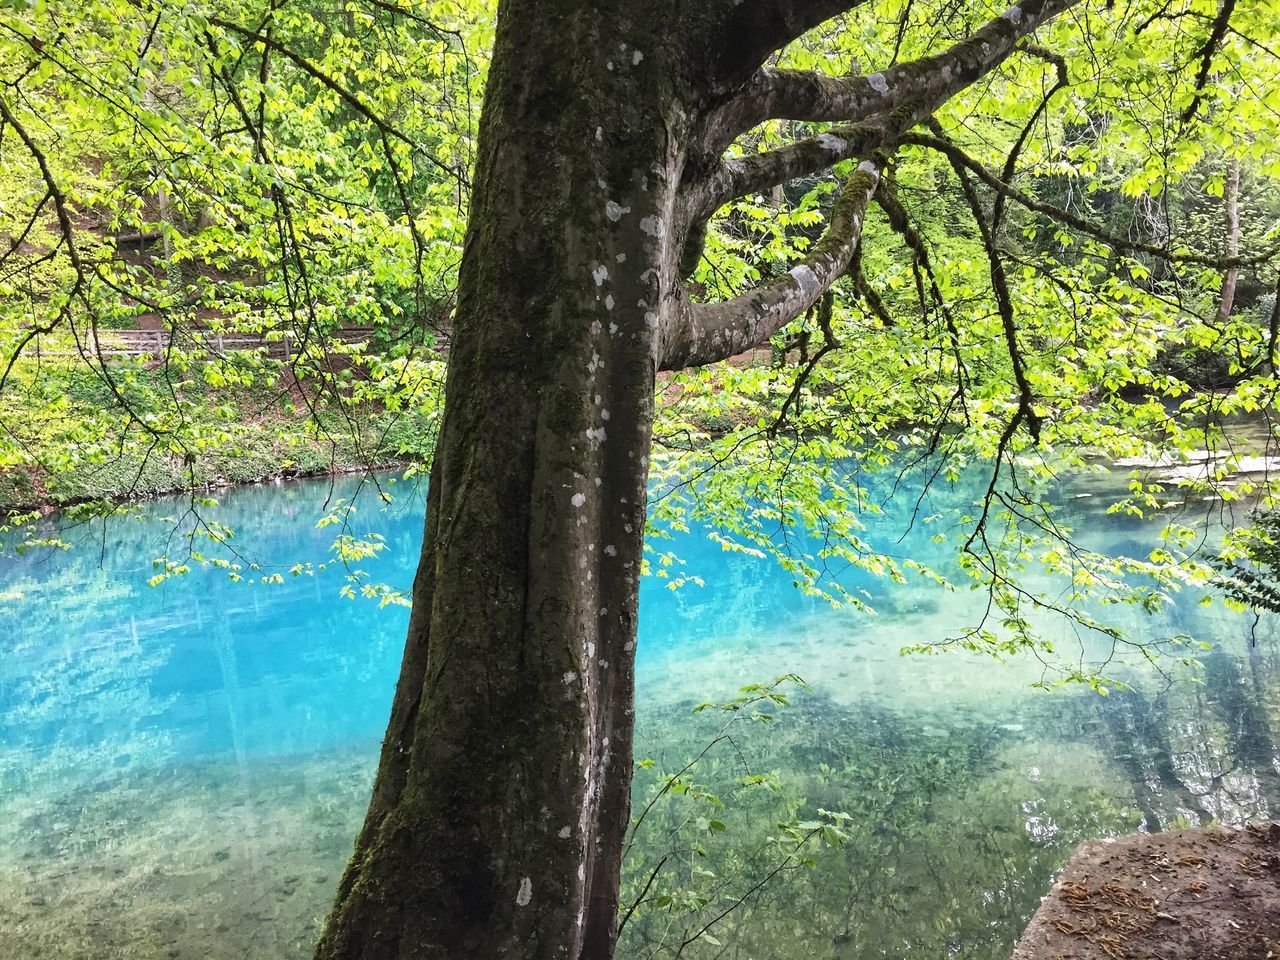 tree, plant, water, nature, trunk, tree trunk, day, tranquility, growth, beauty in nature, land, forest, branch, lake, no people, reflection, outdoors, scenics - nature, tranquil scene